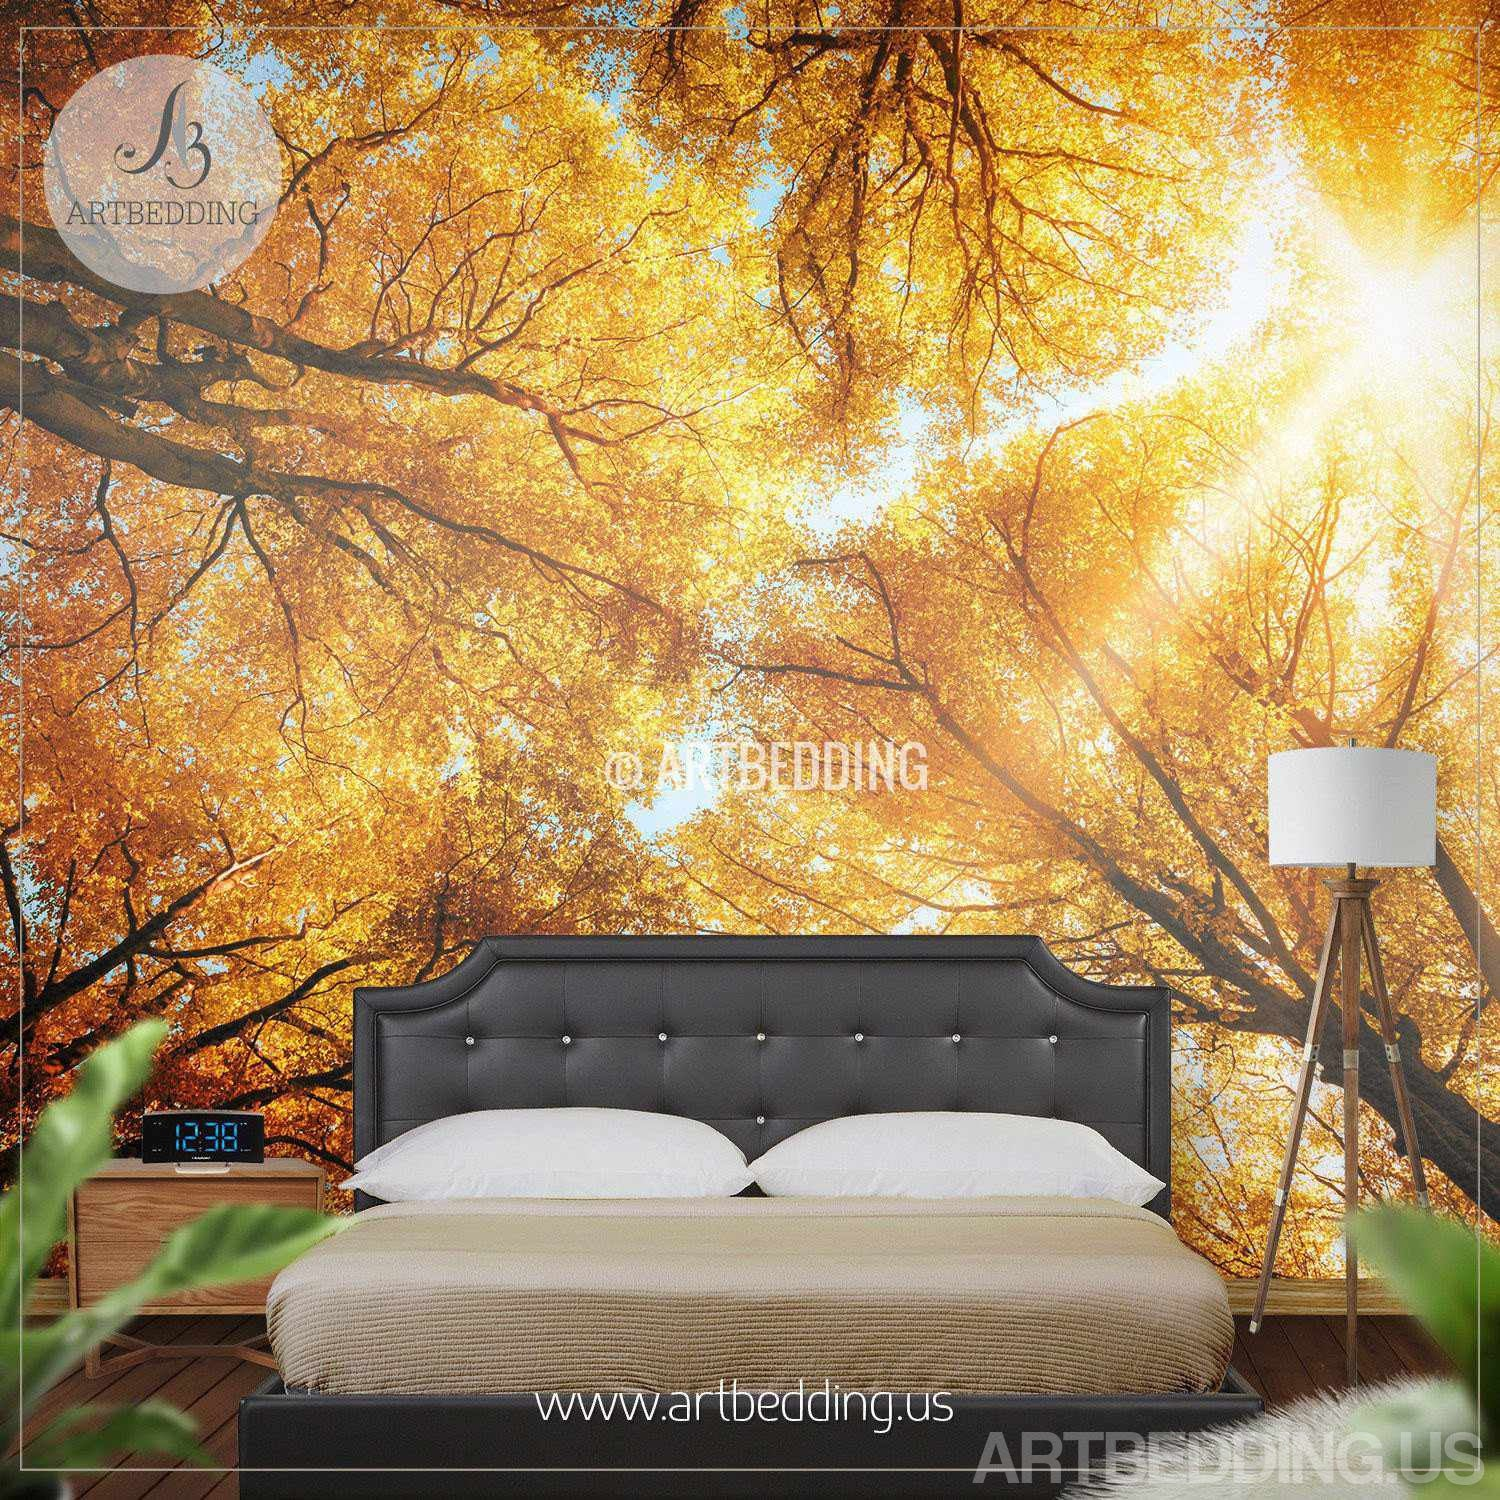 Wall Mural Autumn Treetop, Self Adhesive Photo Mural - ARTBEDDING